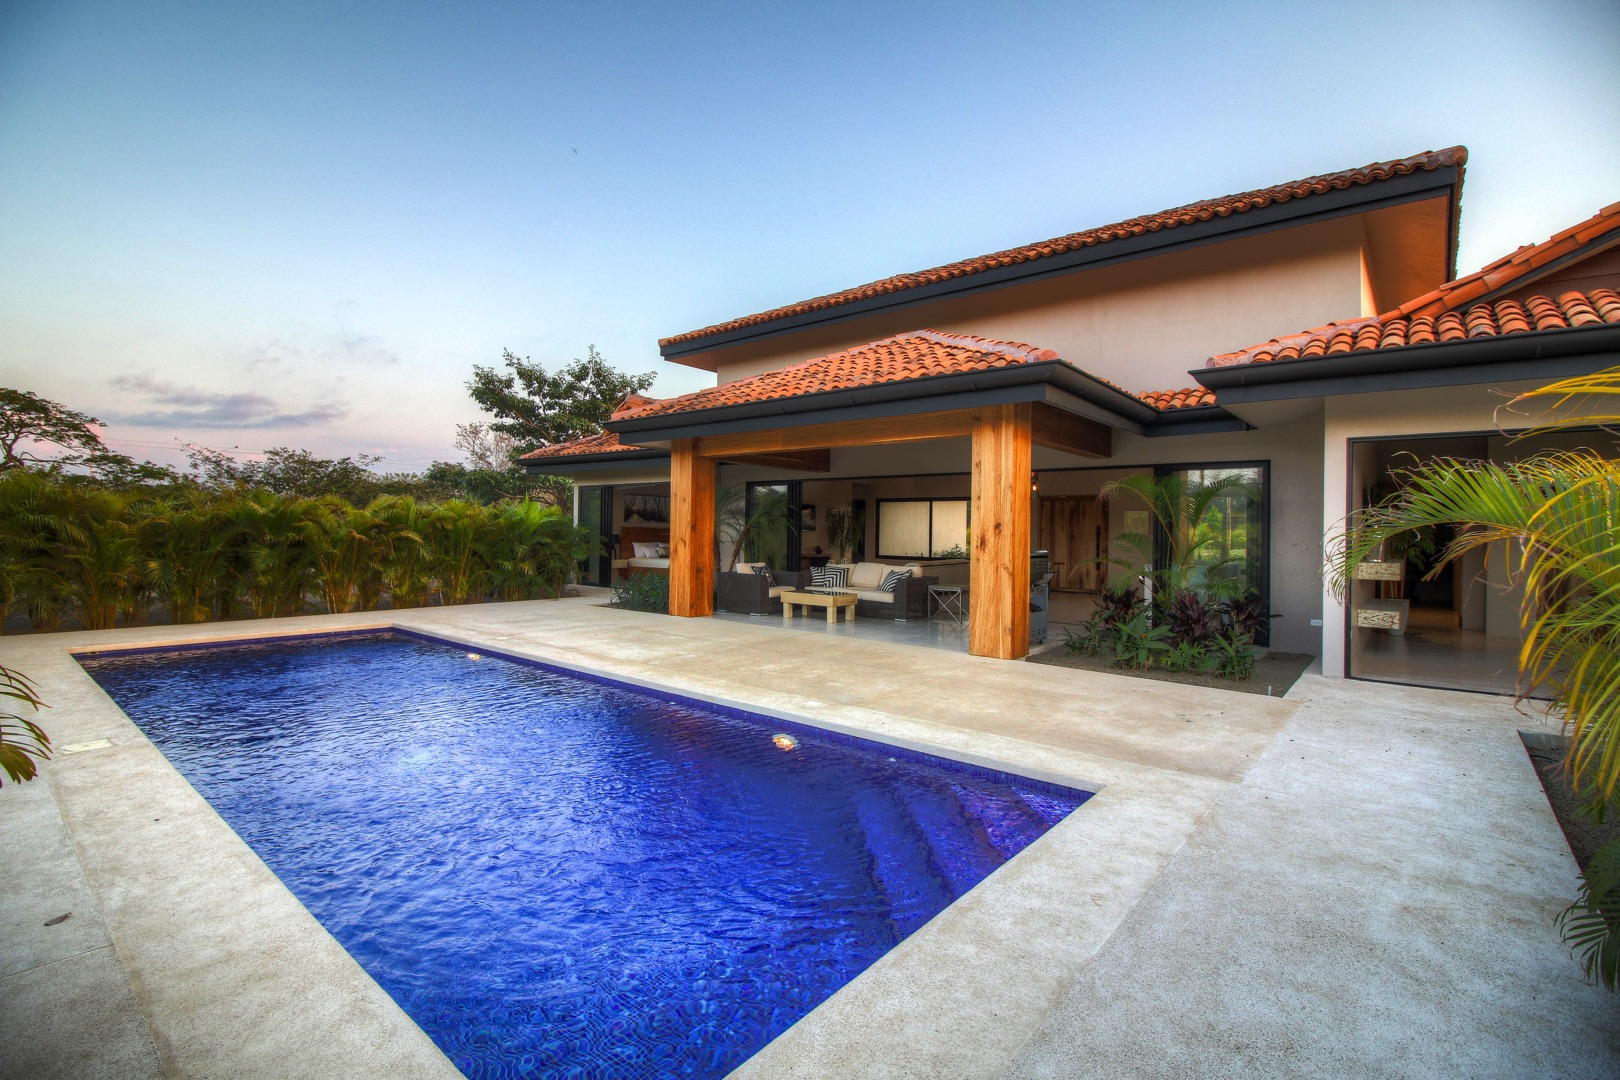 Complete privacy with tropical setting